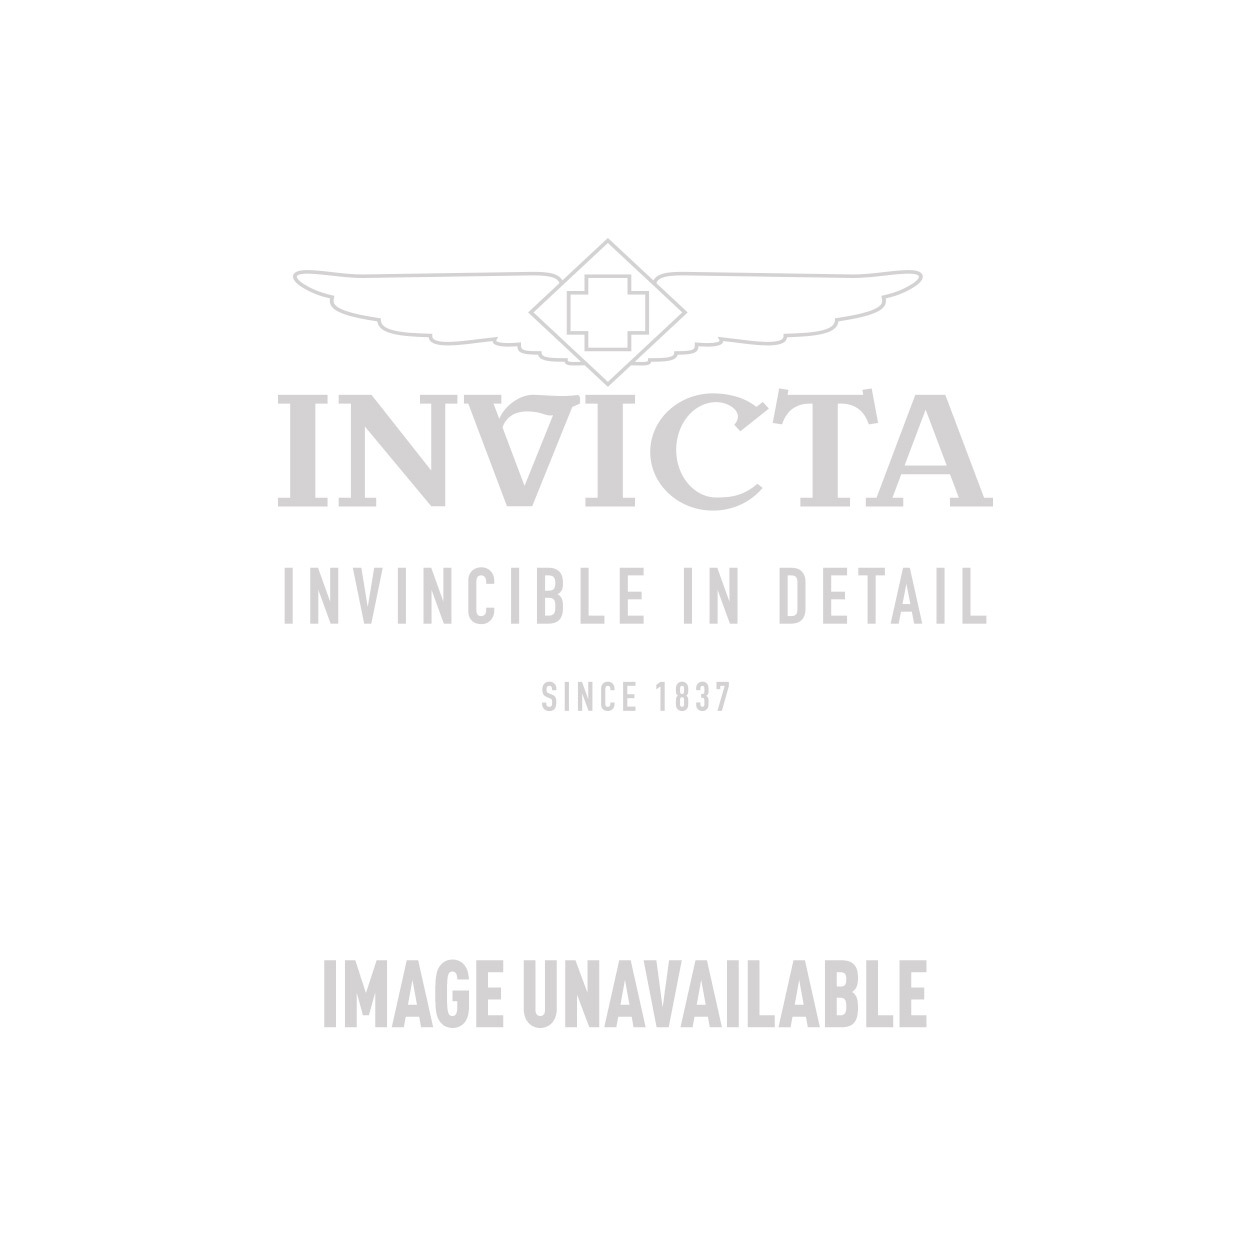 Invicta Lupah Swiss Movement Quartz Watch - Stainless Steel case with Dark Grey tone Leather band - Model 19520